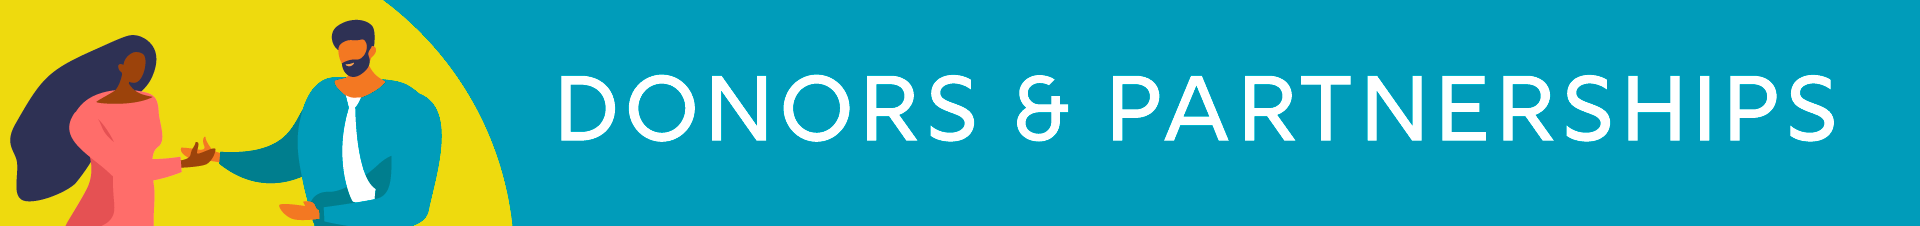 Donors Partners